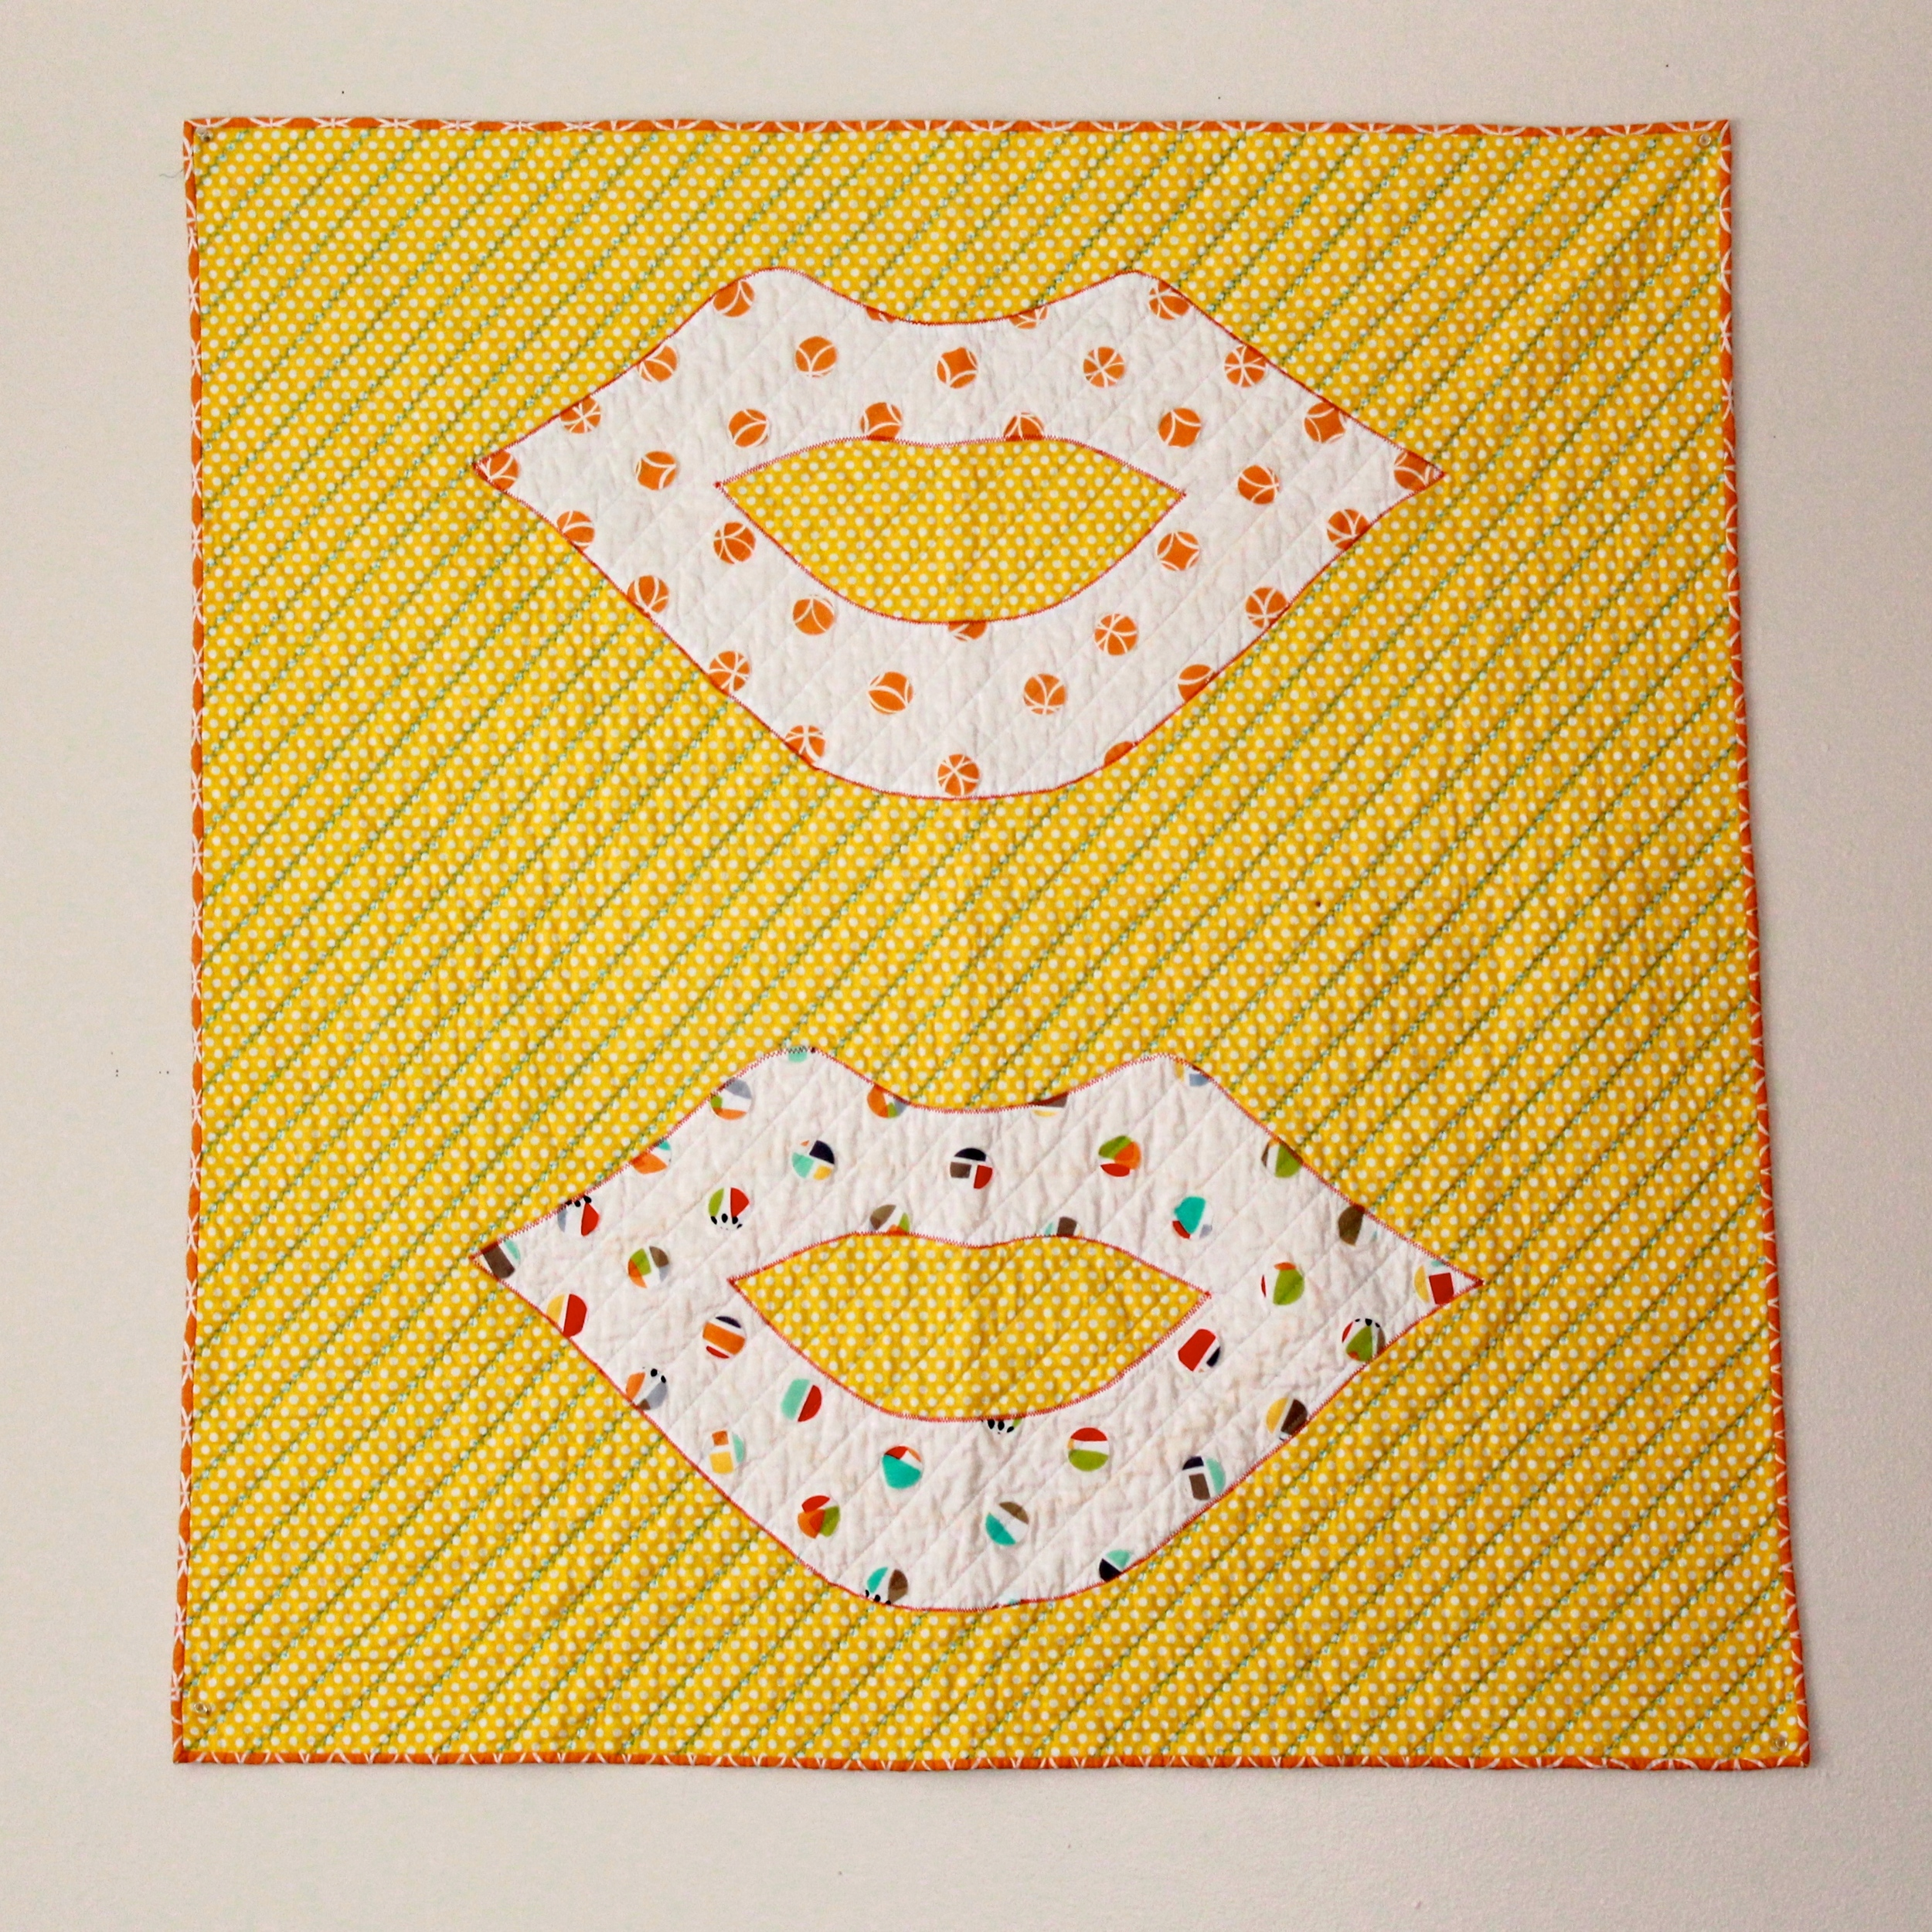 Andy Warhol/Roy Lichtenstein wall hanging quilt with lips and polka dots